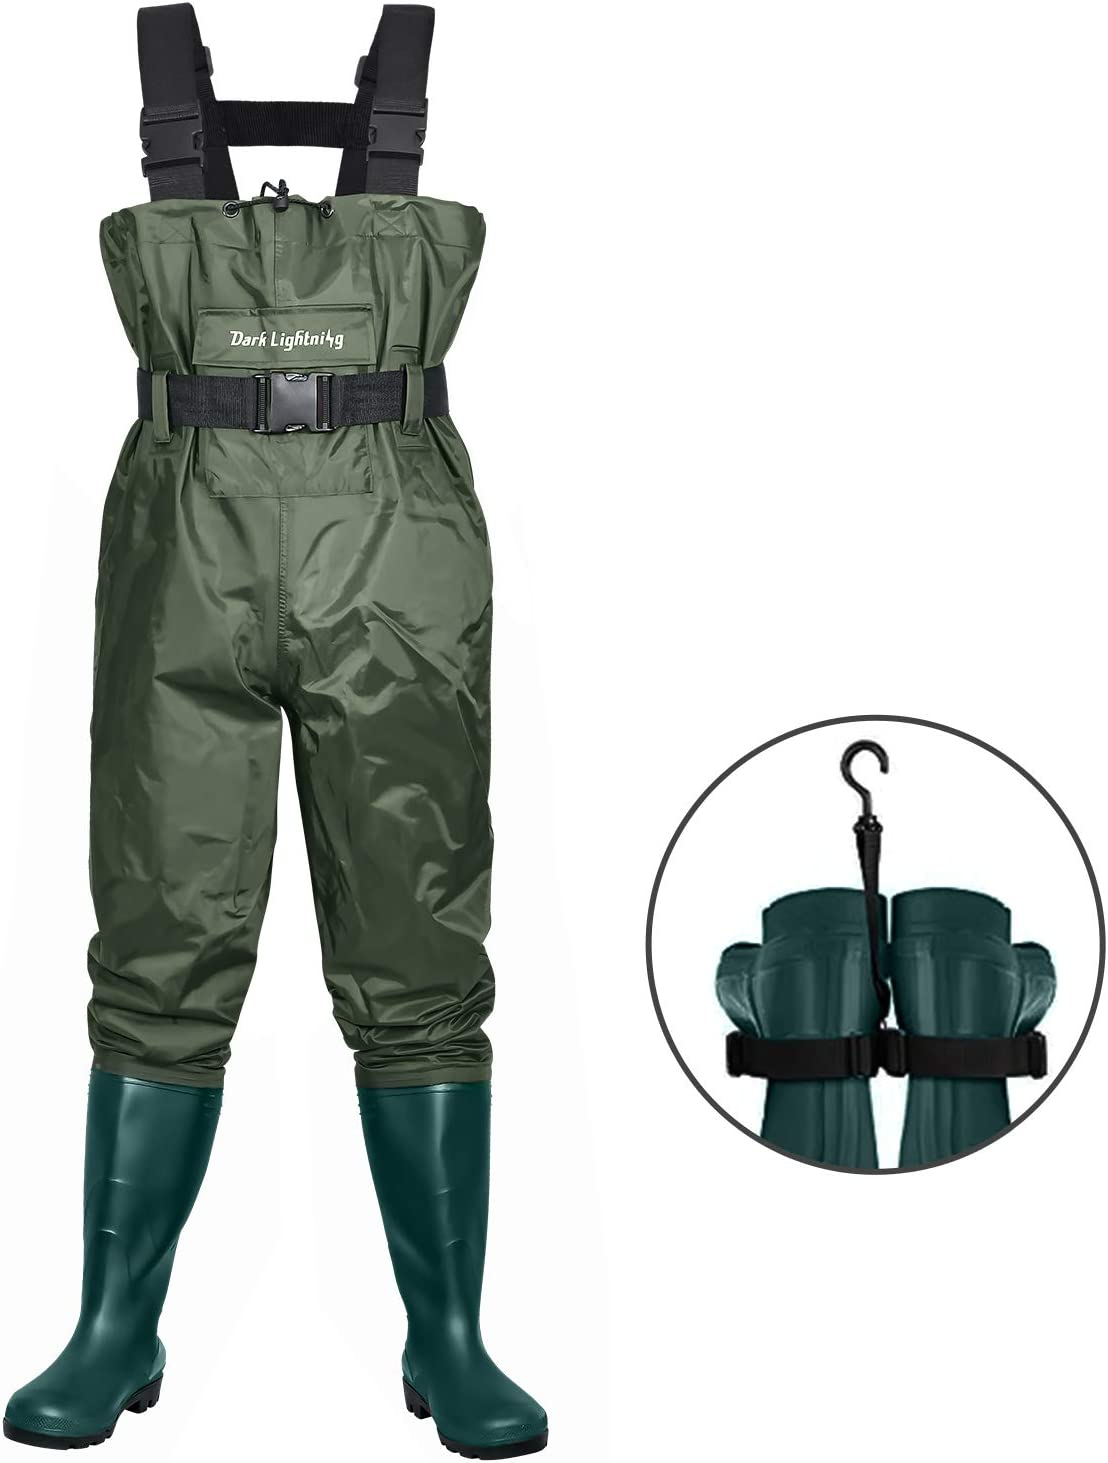 Dark Lightning Fly Fishing Waders for Men and Women with Boots, Mens/Womens High Chest Wader with Boot Hanger : Sports & Outdoors